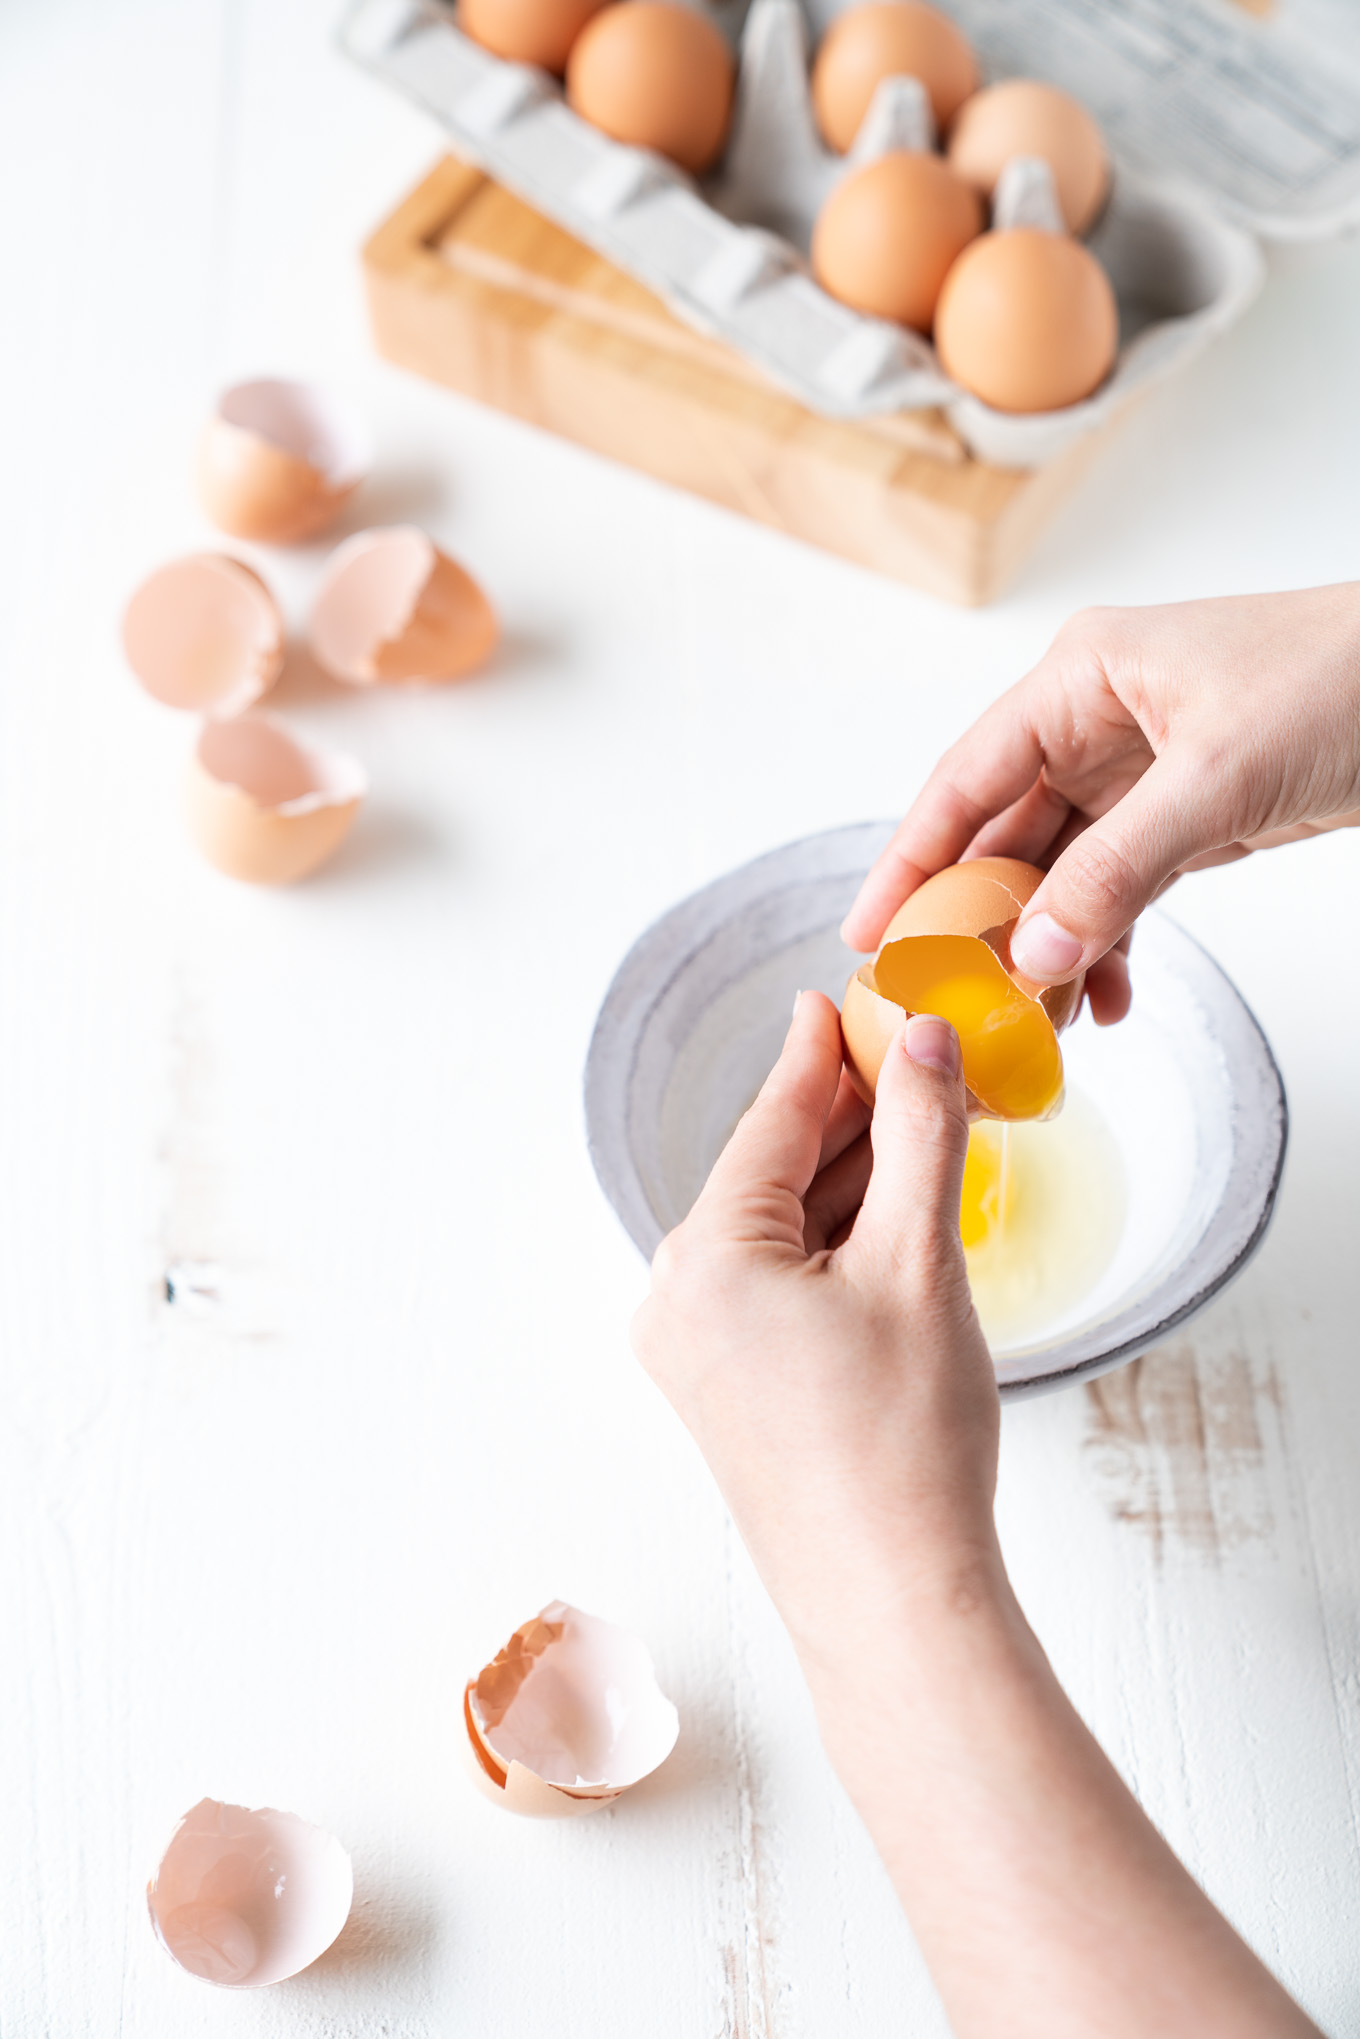 Are pasture-raised eggs better for you - carton with bowl and cracked egg